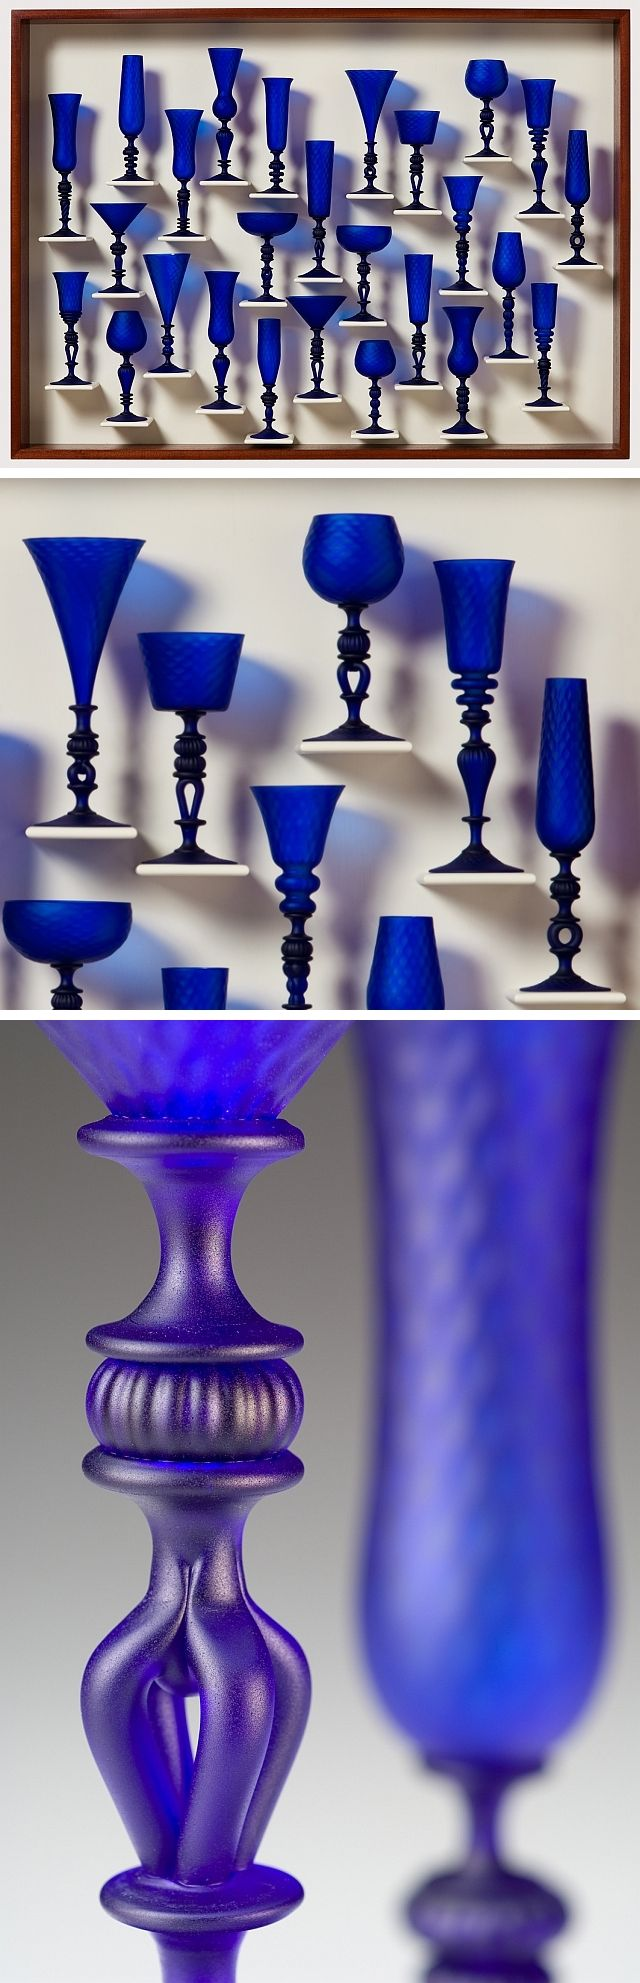 Satin Blue Goblet Study ~ artist Kenny Pieper.   Photo credit David Ramsey.  Corning Museum of Glass, New York